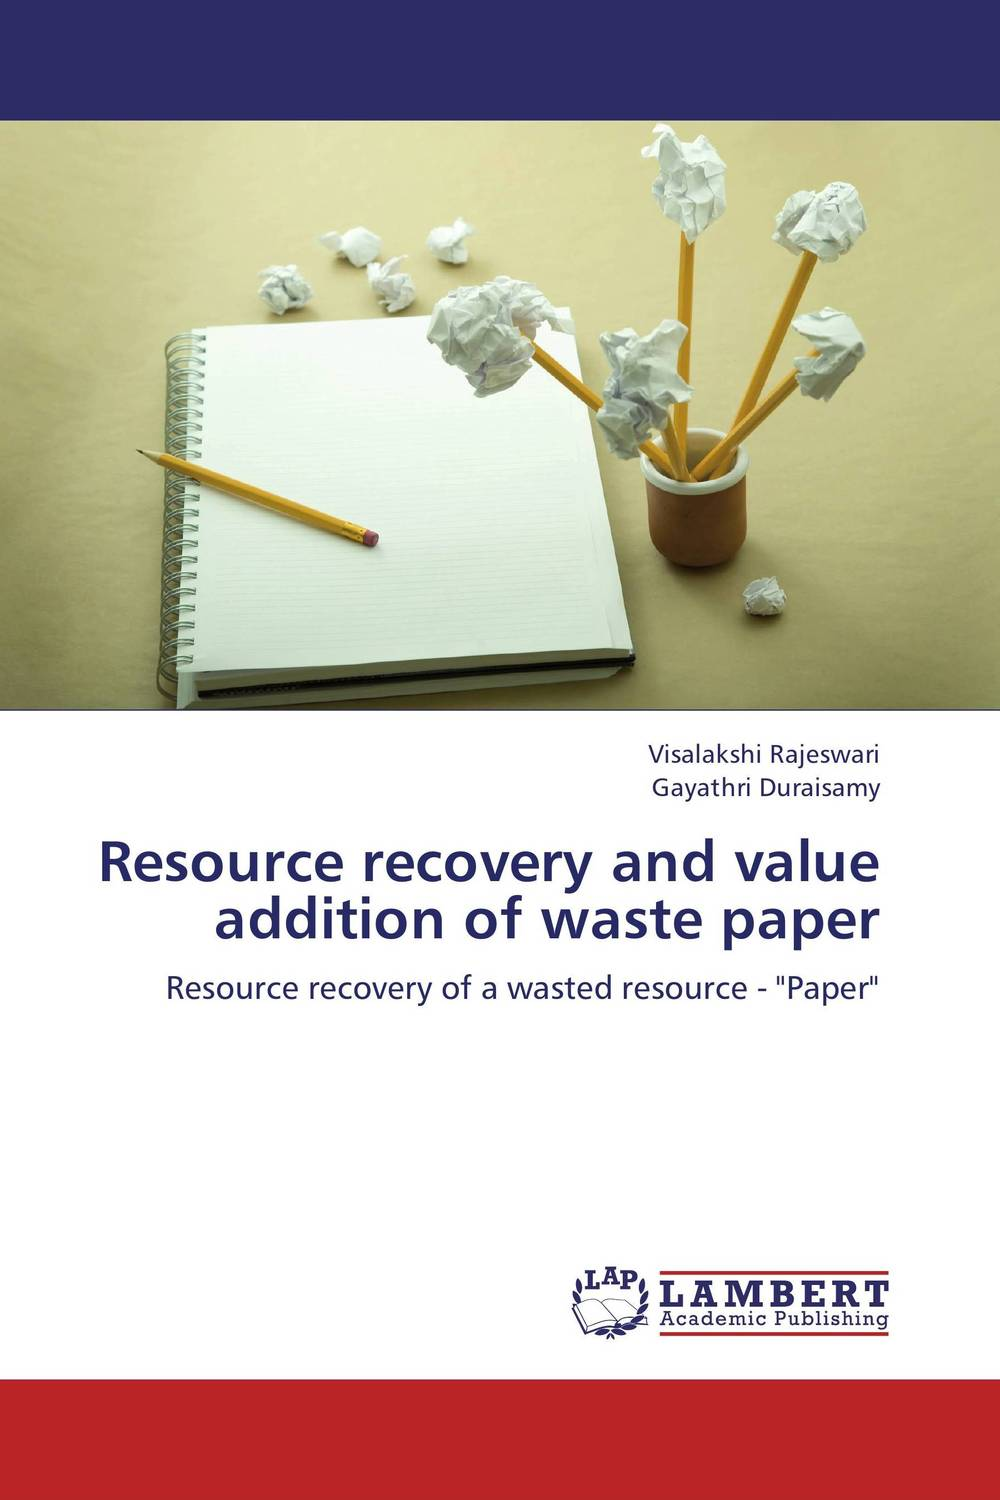 Resource recovery and value addition of waste paper kitrlp74002unv55400 value kit roselle paper co premium sulphite construction paper rlp74002 and universal economy woodcase pencil unv55400